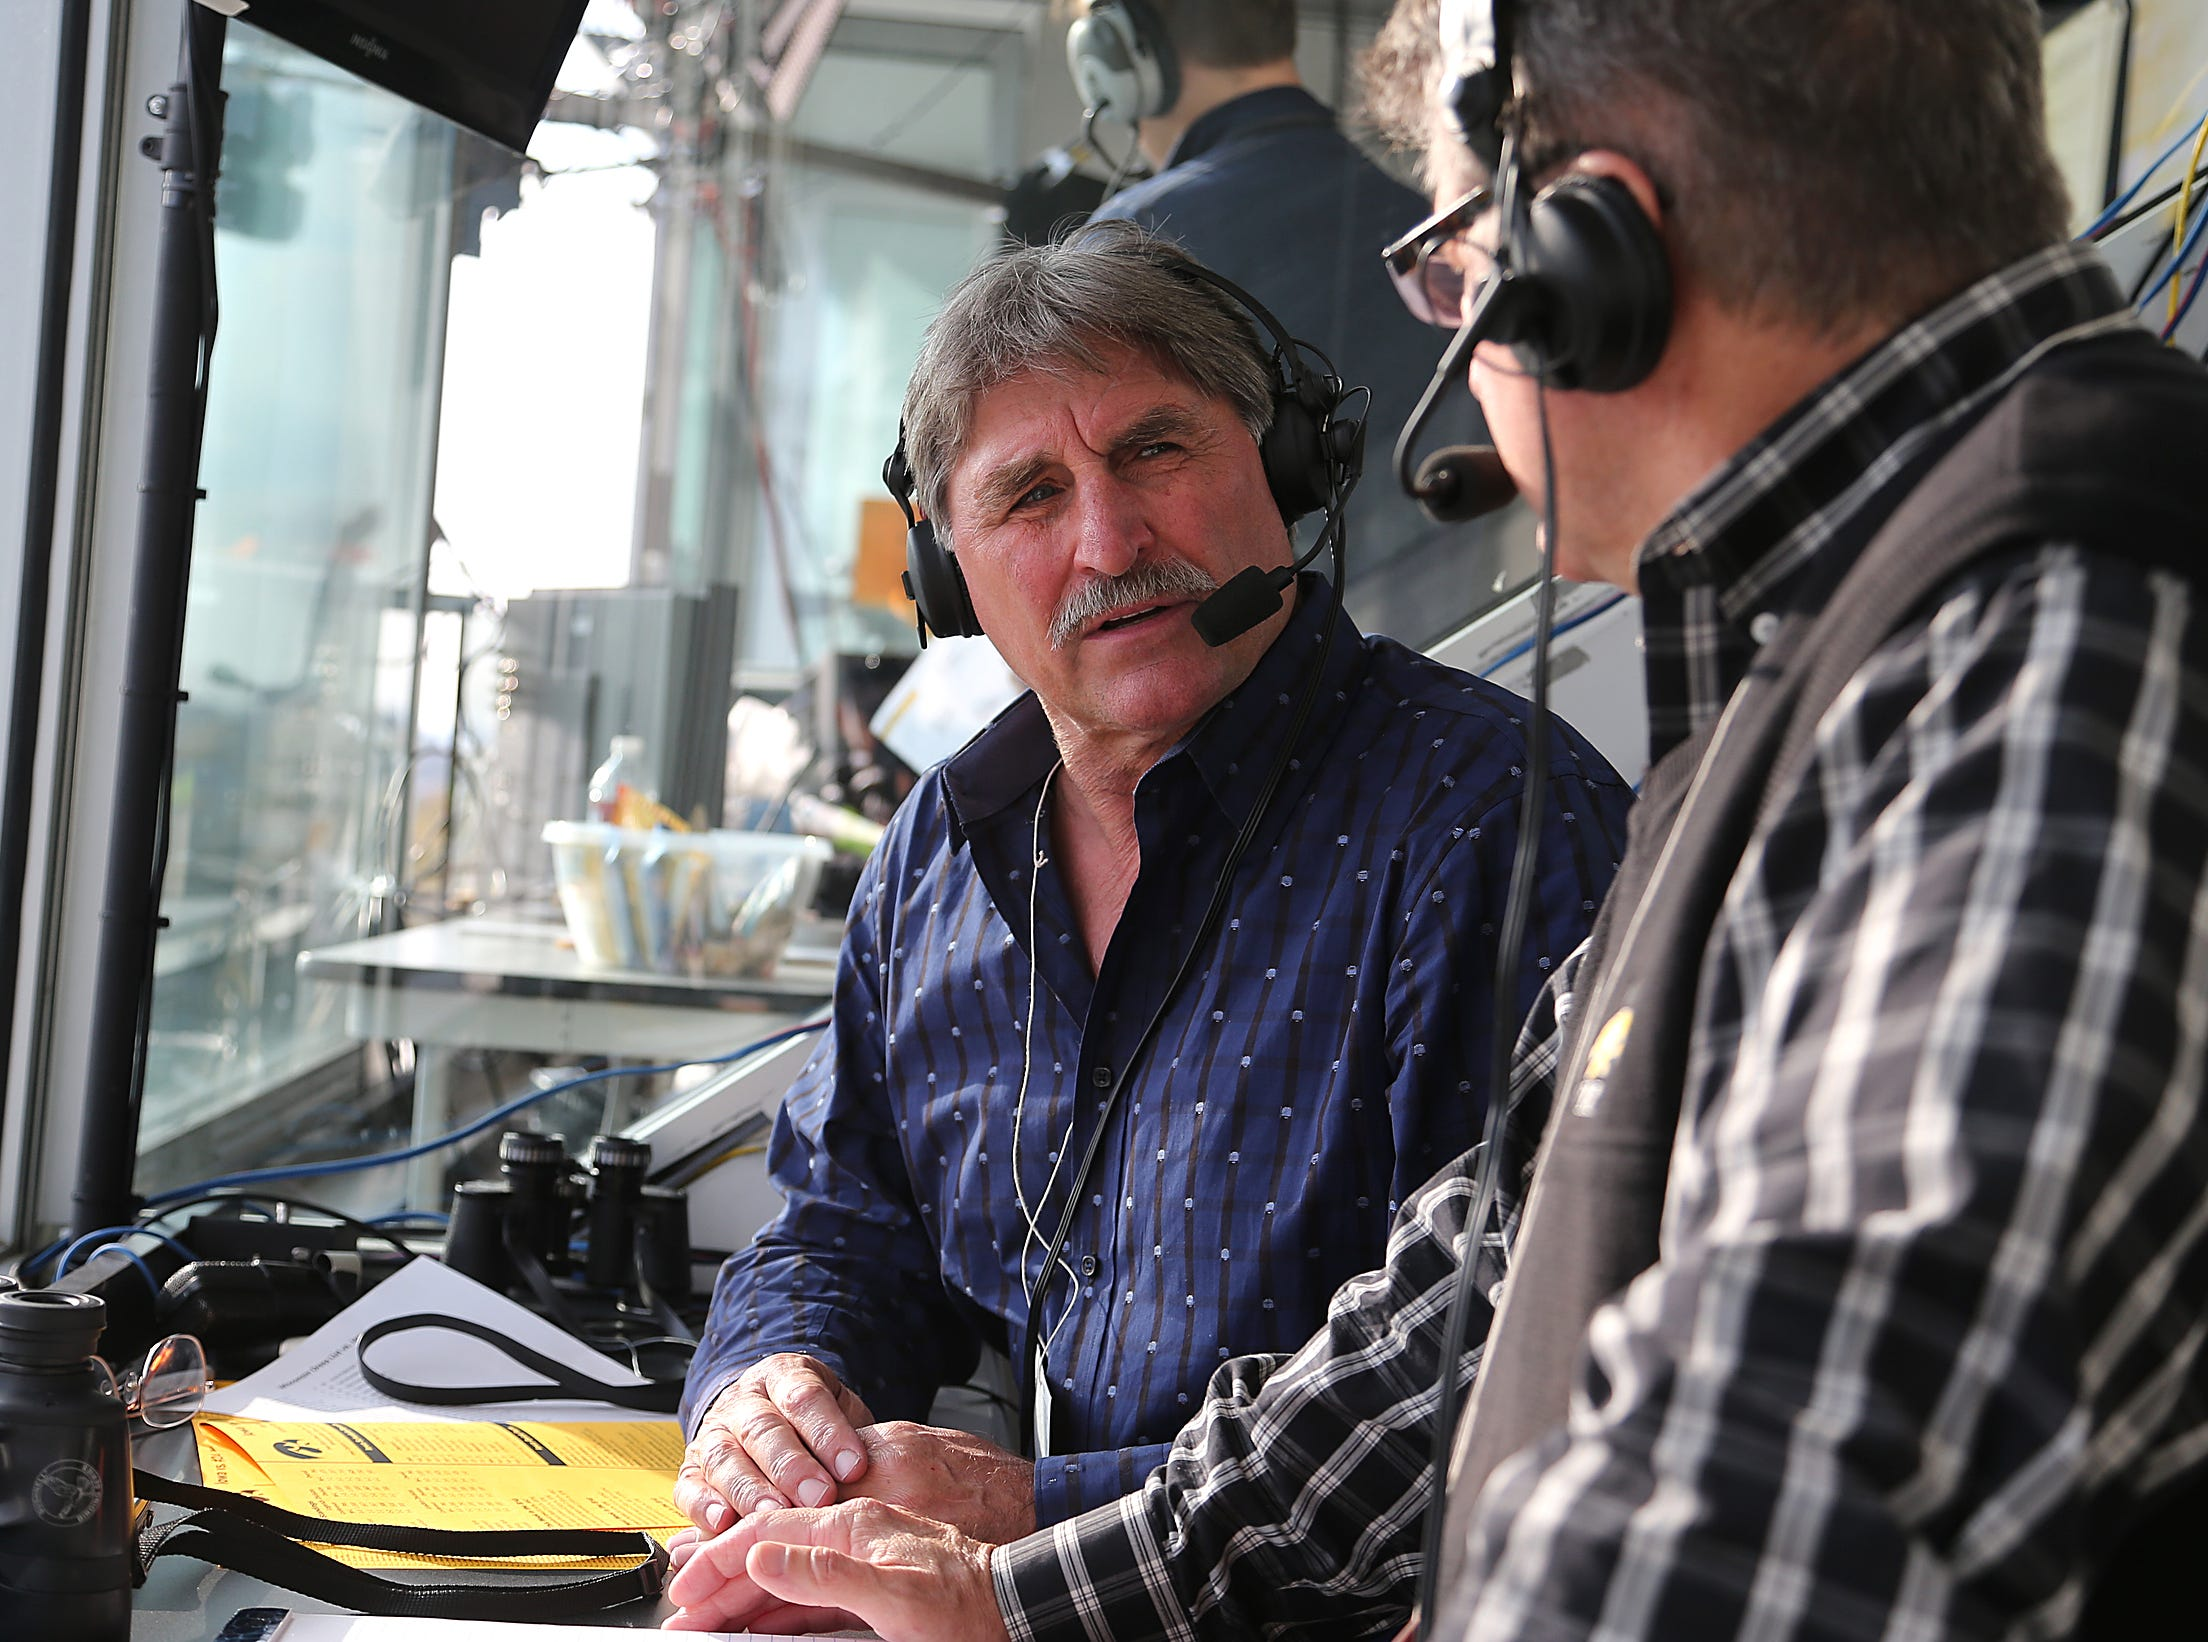 From 2013: Ed Podolak, left, talks with Iowa play-by-play announcer Gary Dolphin prior to kickoff against Wisconsin in 2013.